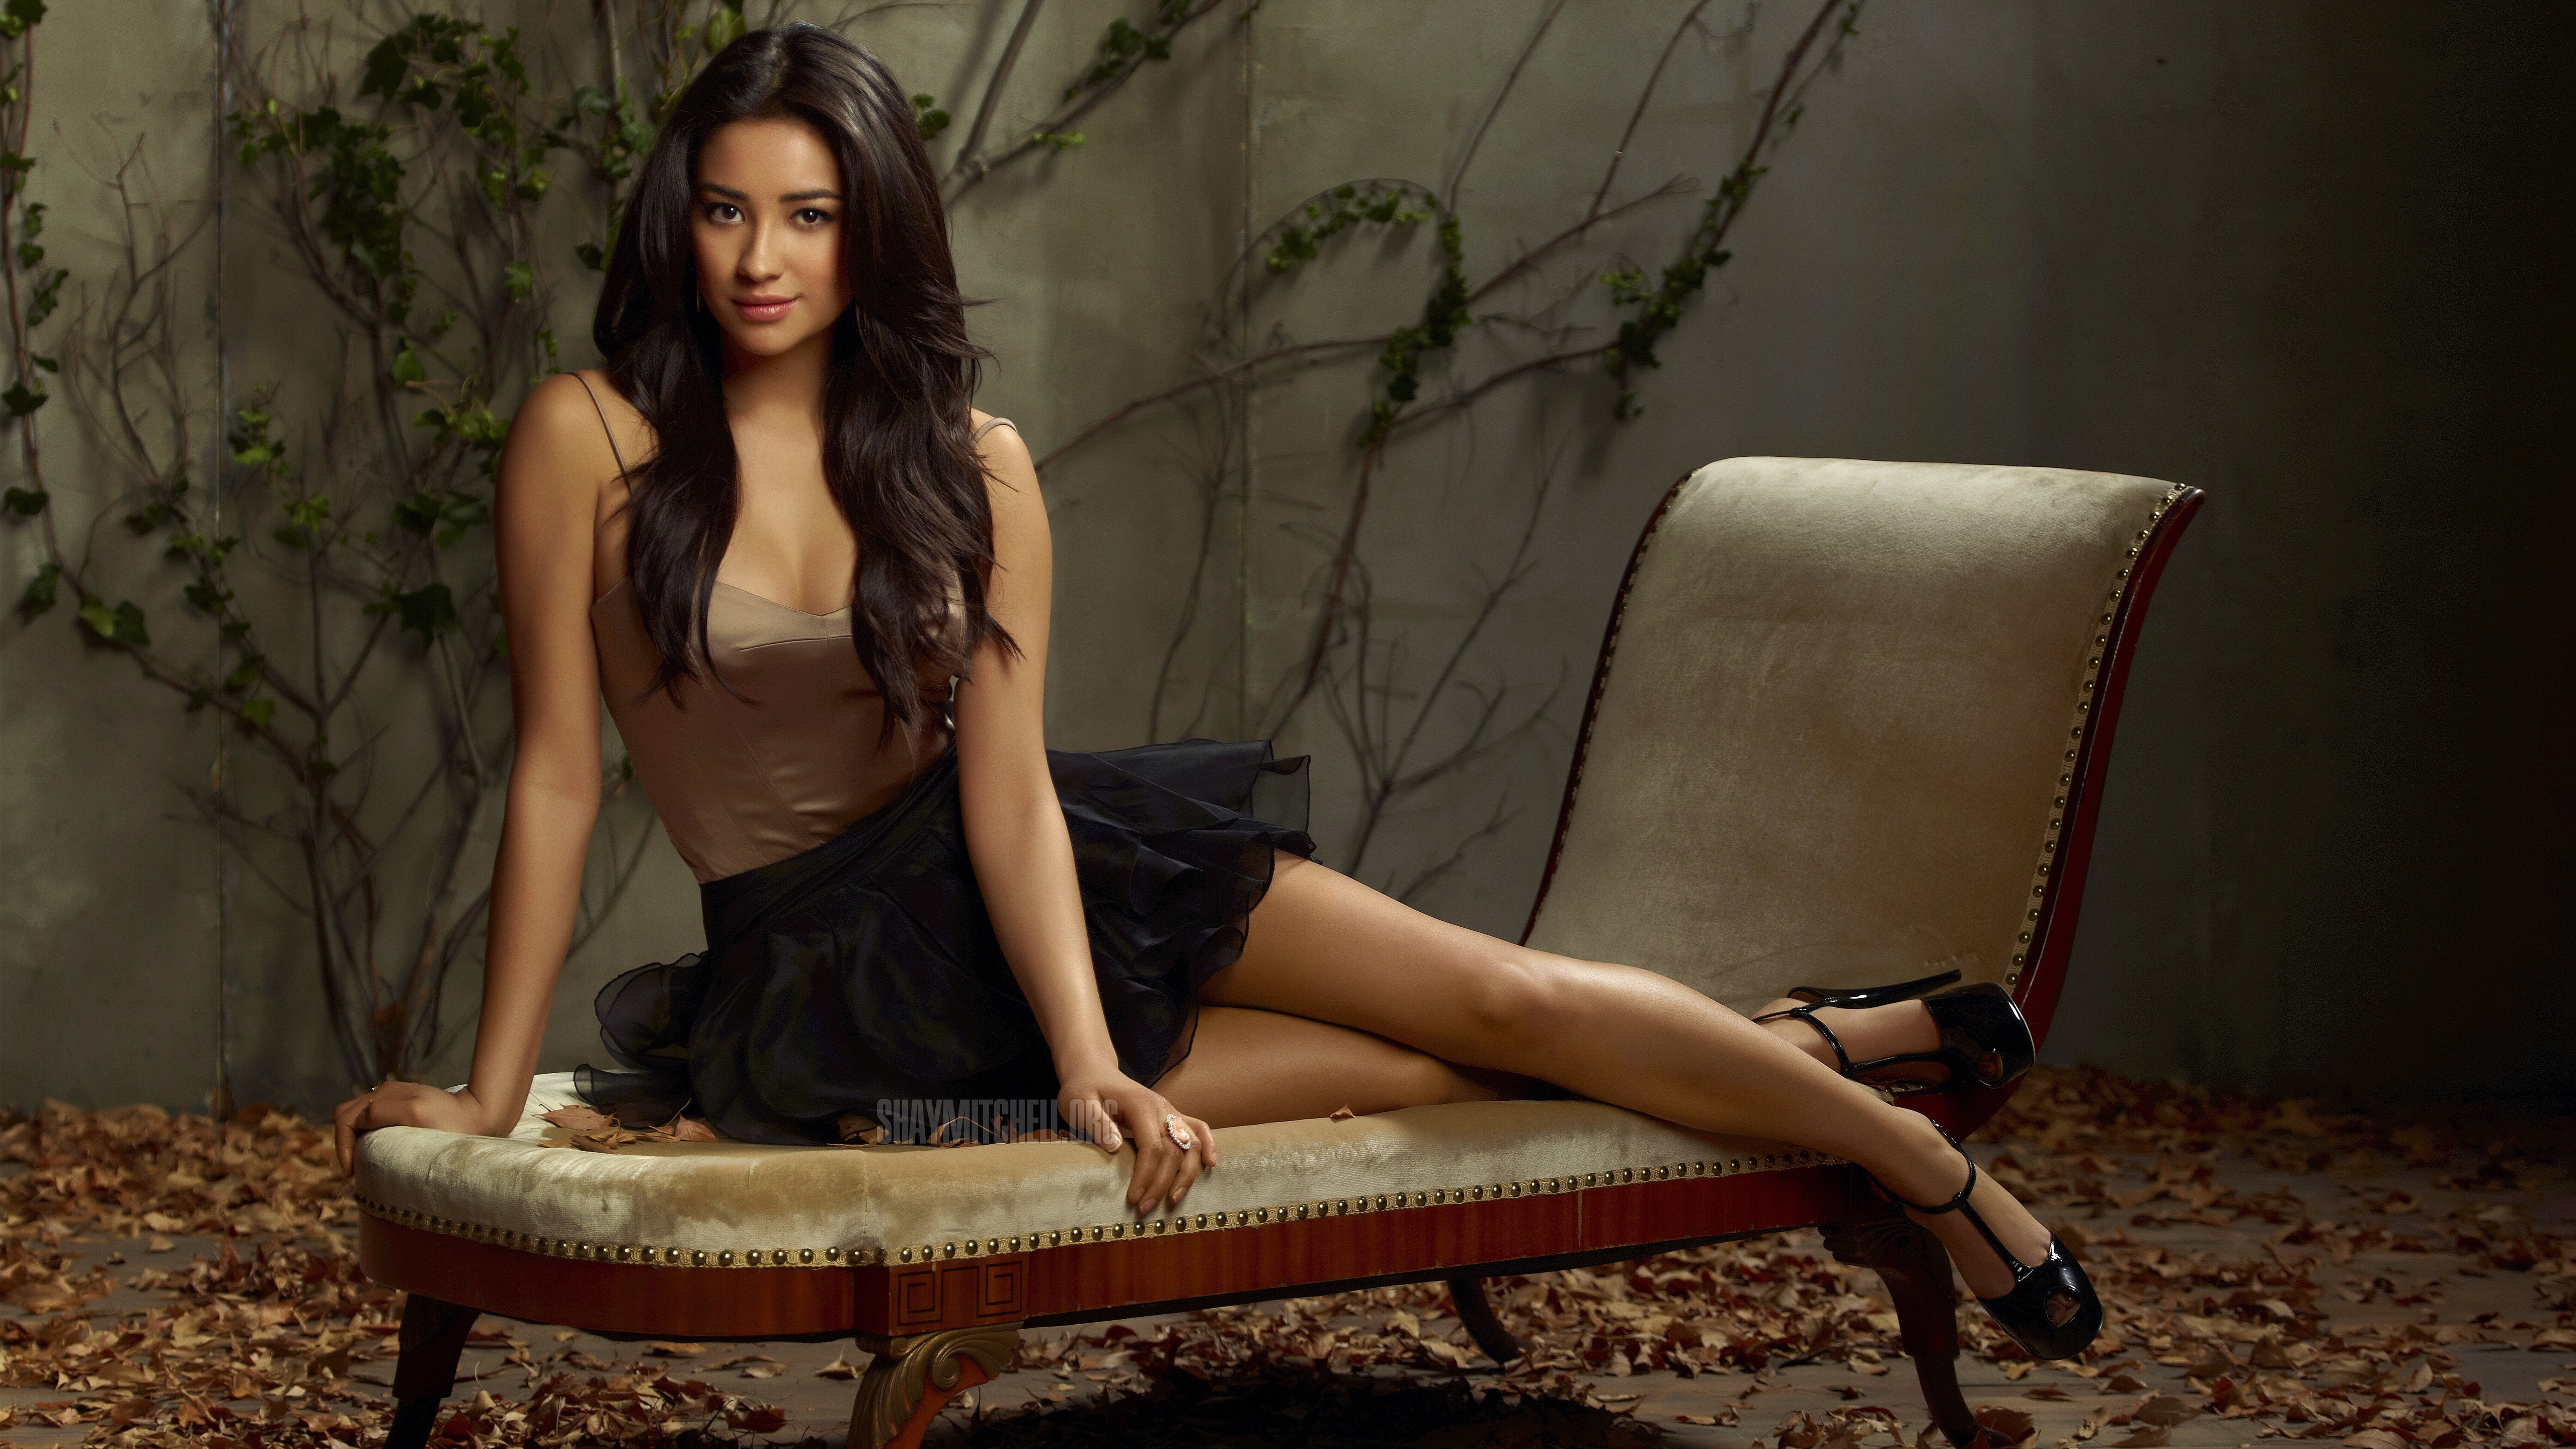 Pretty Little Liars Iphone Wallpaper Shay Mitchell Pretty Little Liars Wallpapers Hd